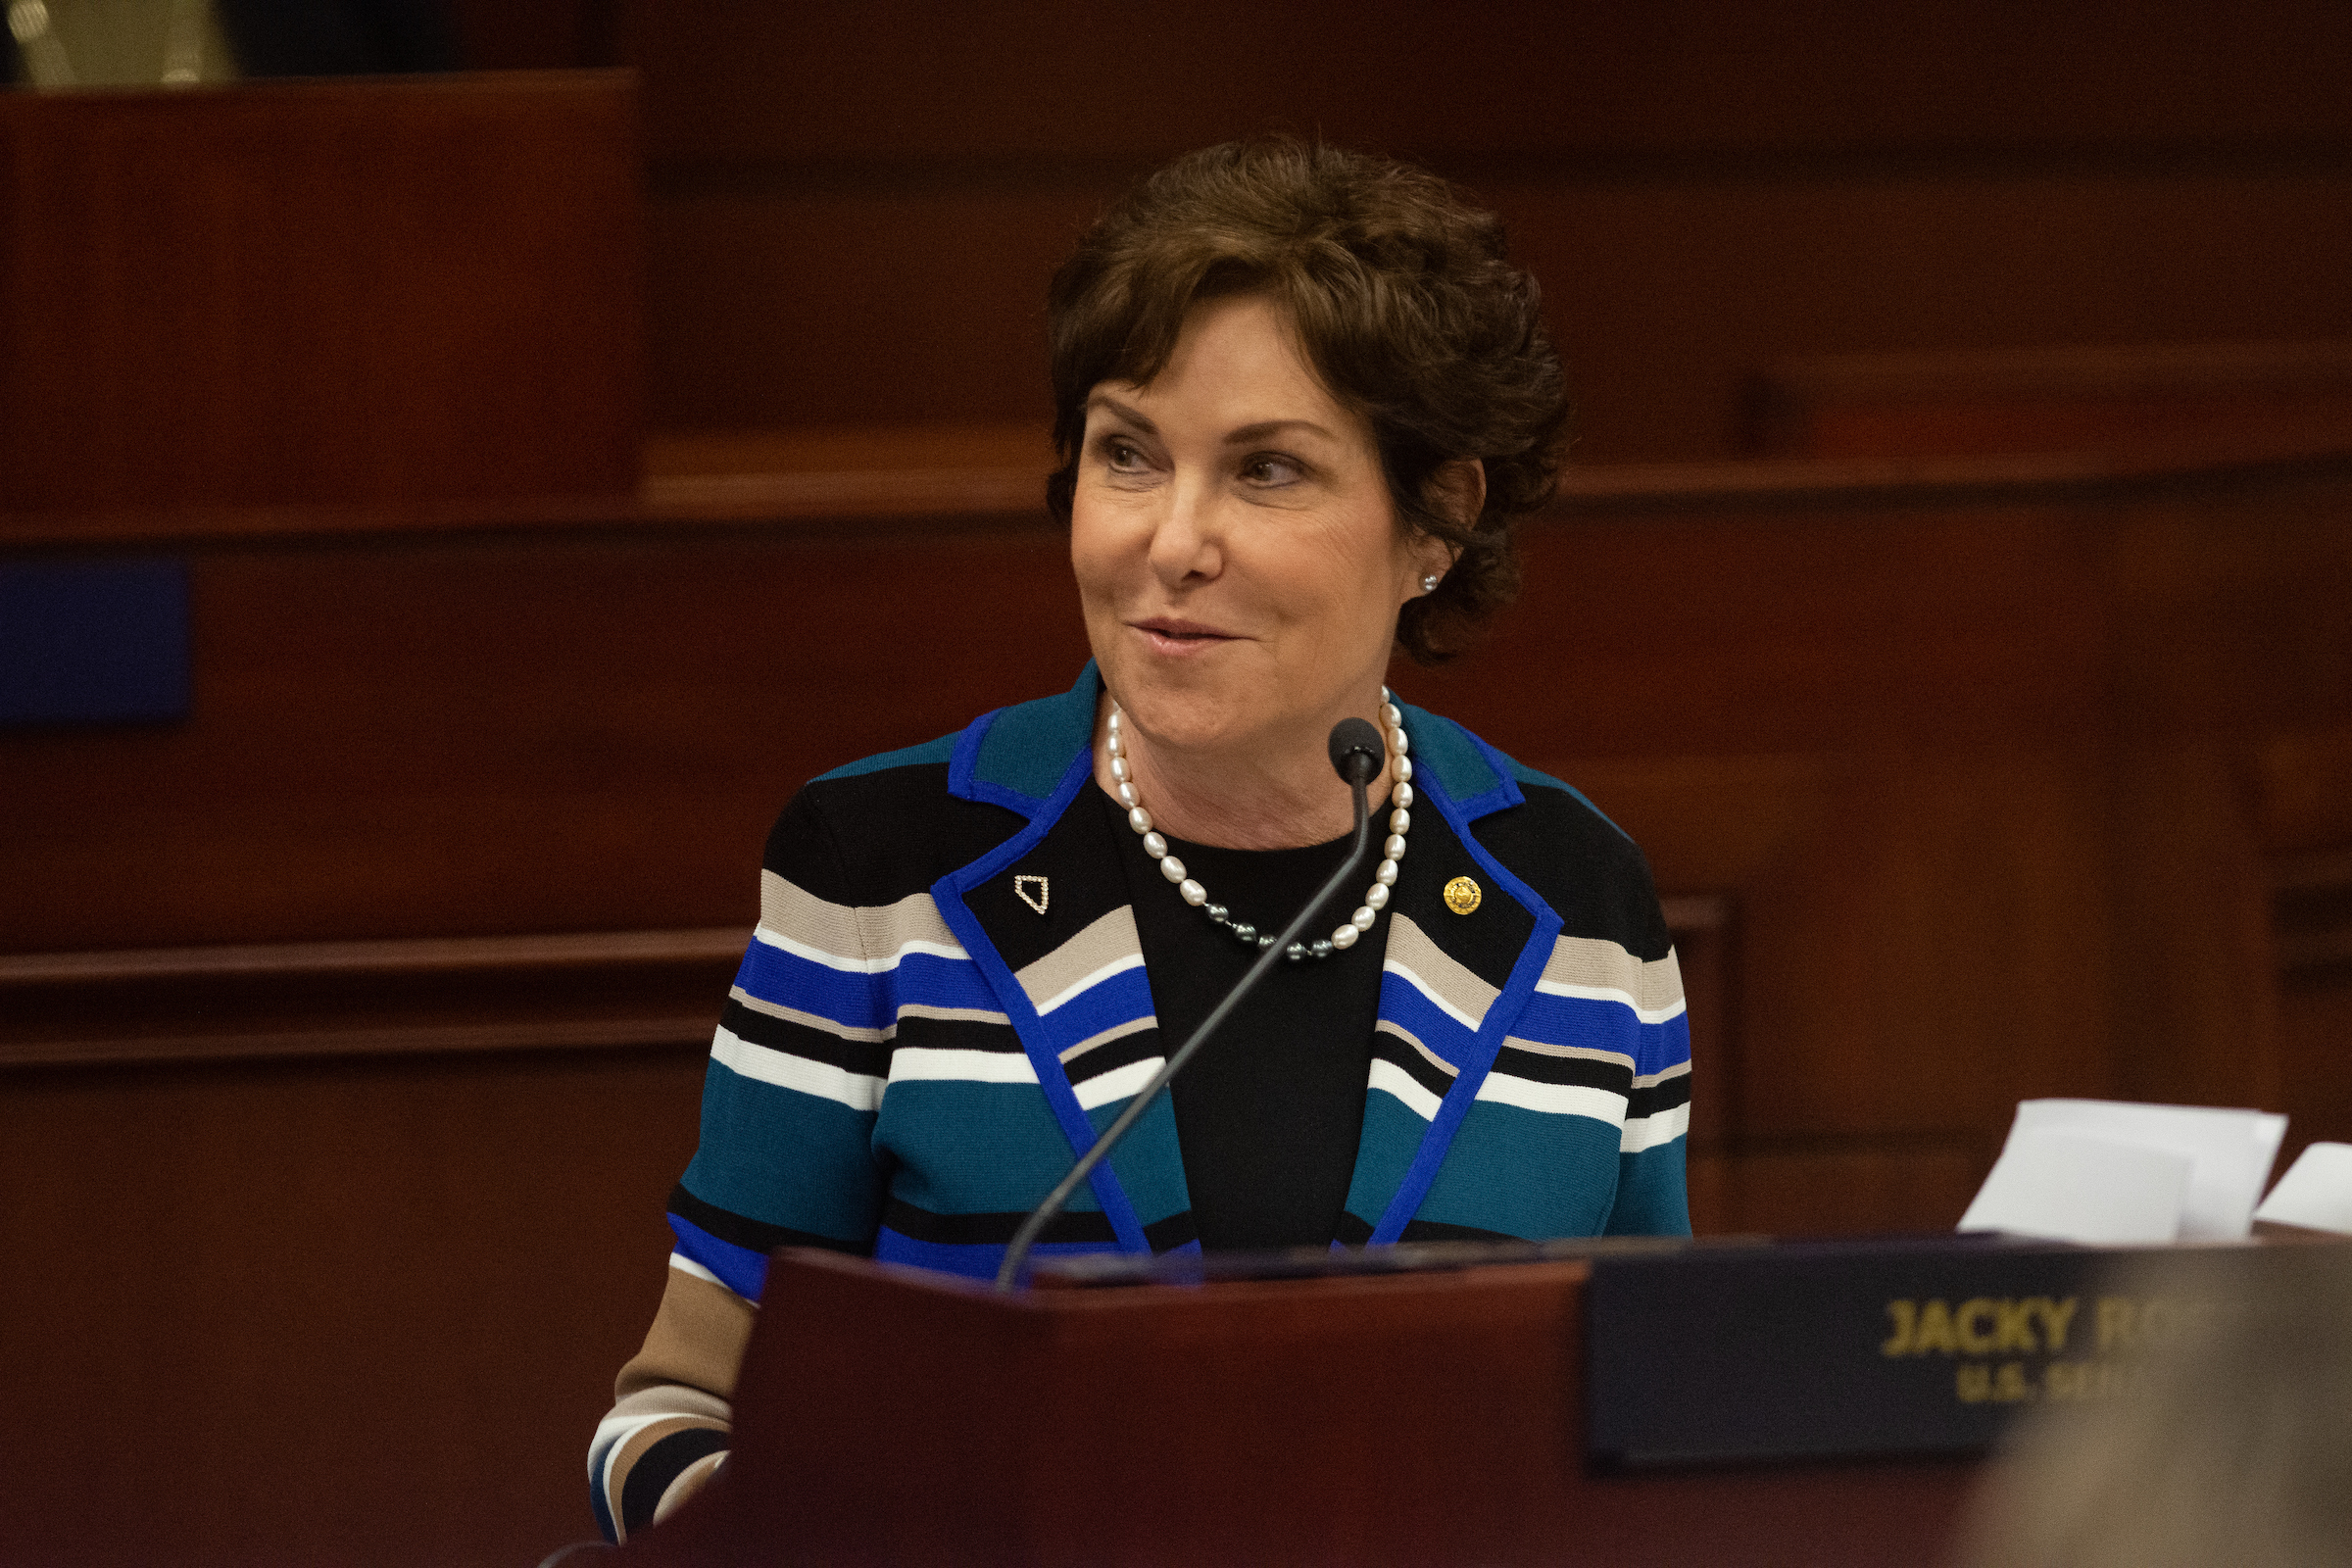 Senator Jacky Rosen in a striped sweater speaking to the Nevada Legislature